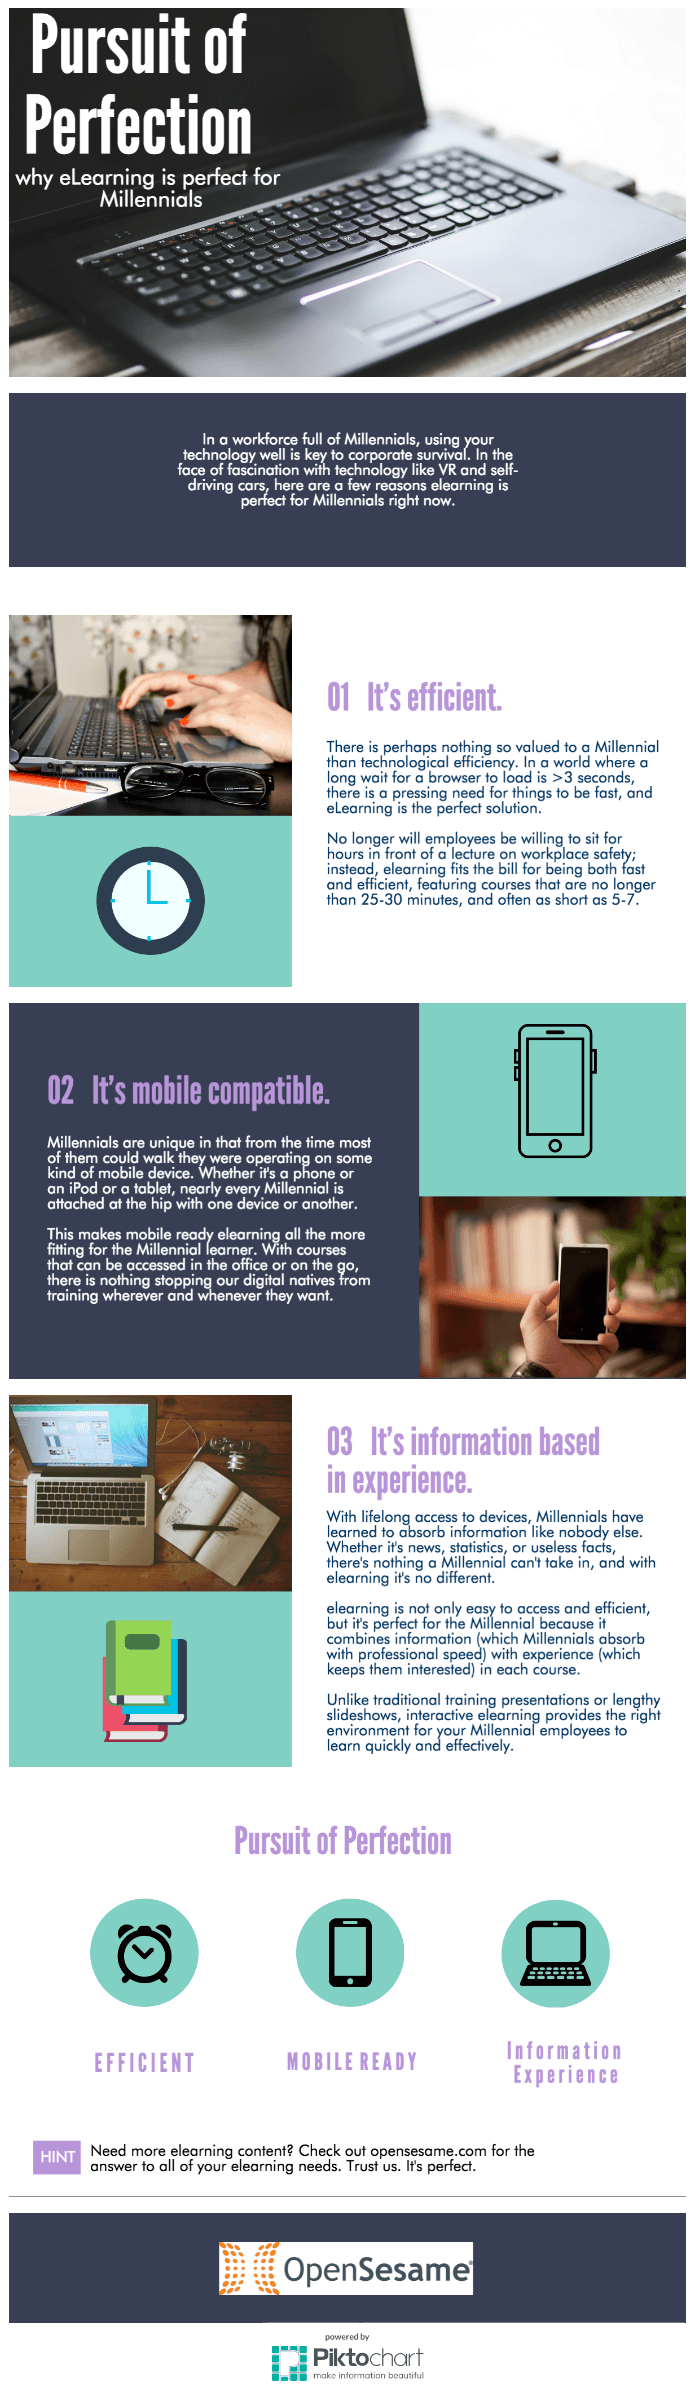 Why eLearning is Perfect for Millennials Infographic